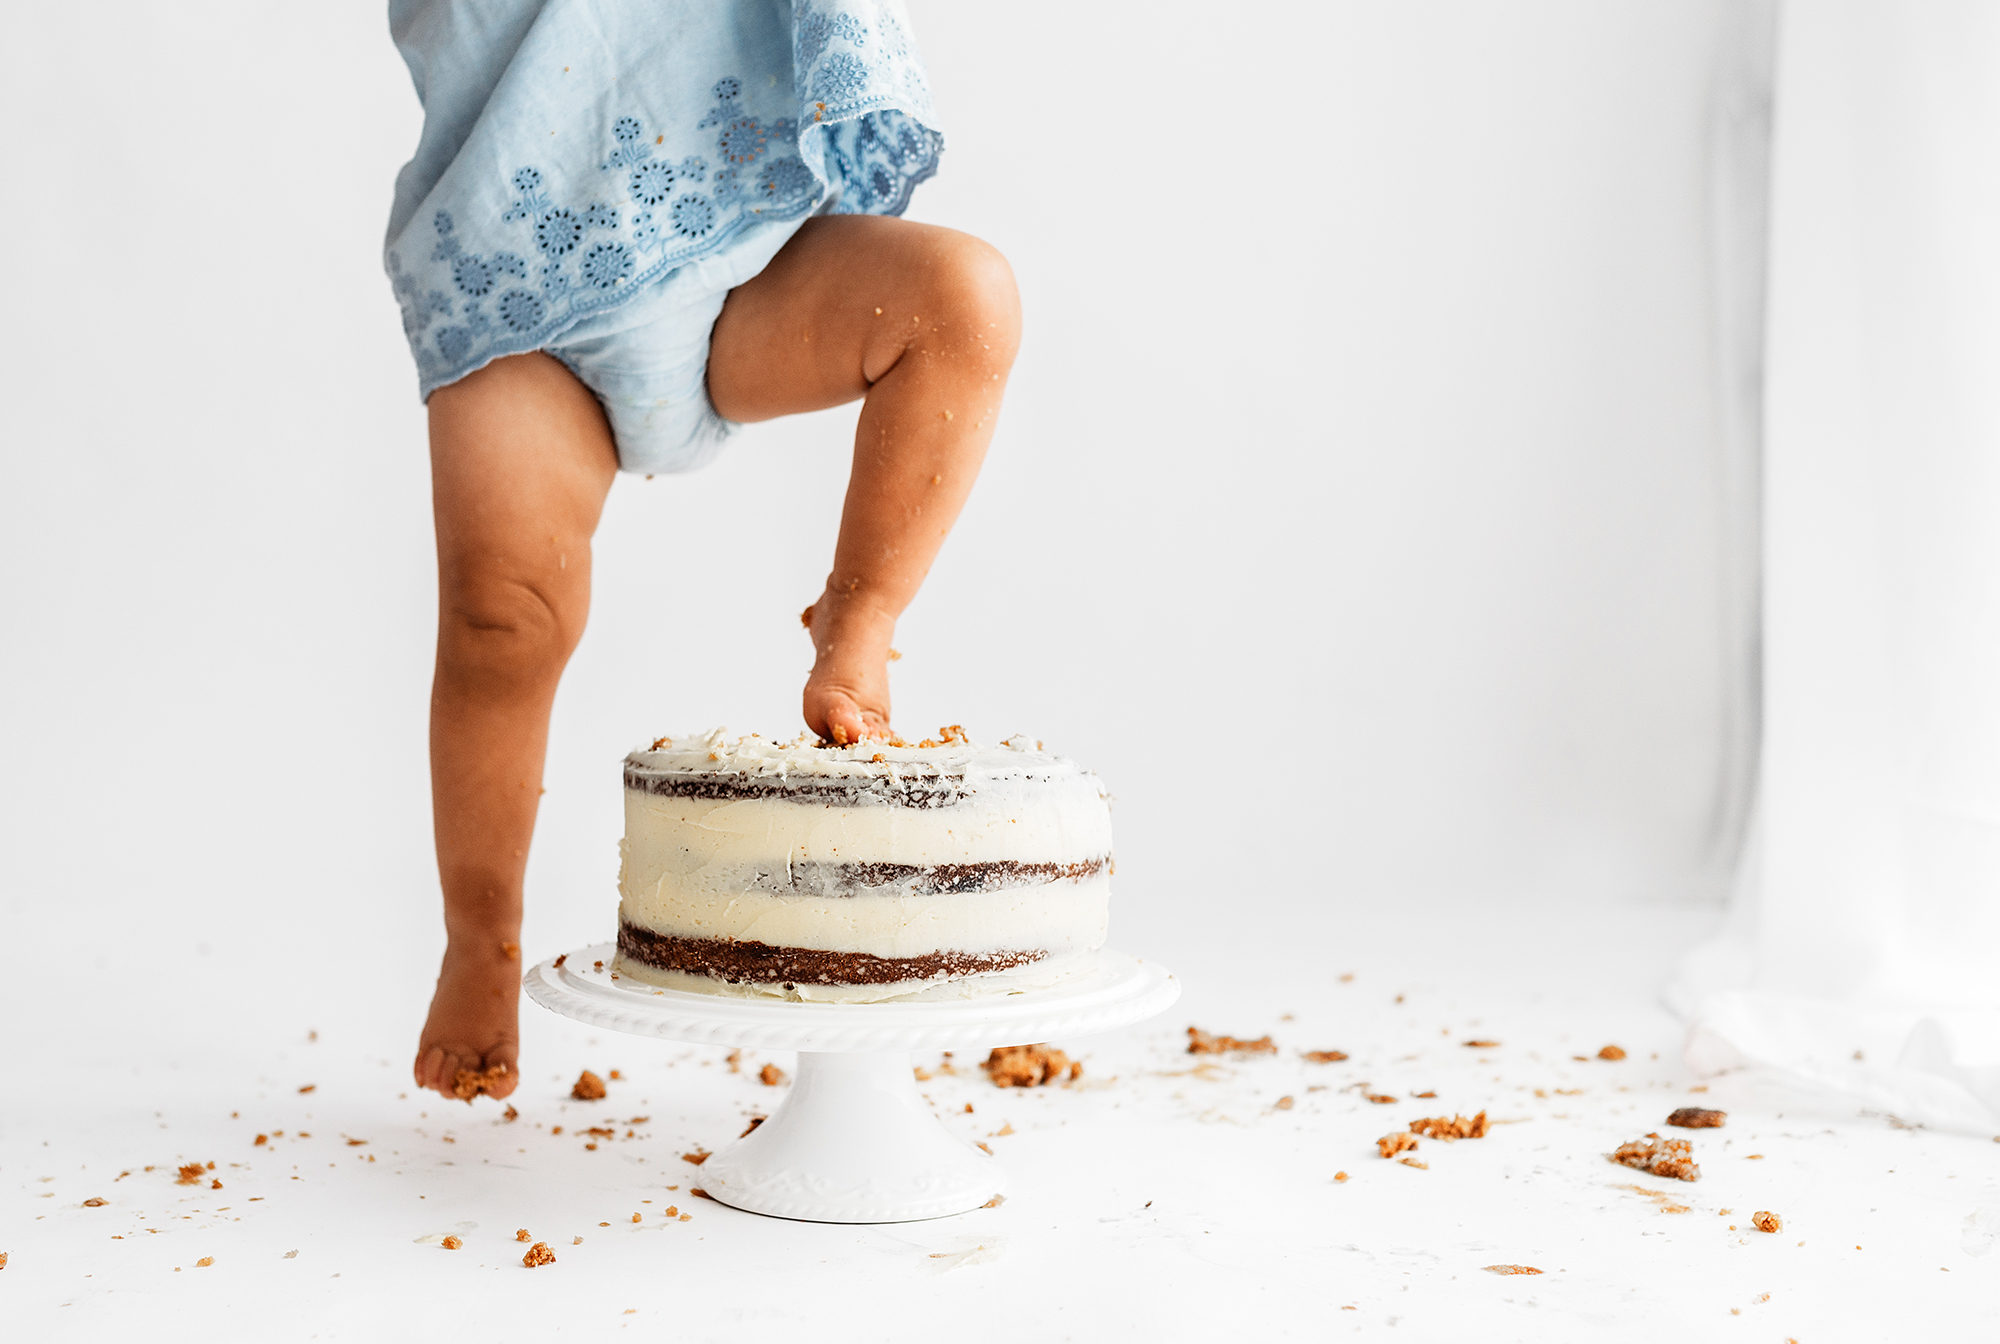 Cake Smash Photography Sheffield, cake squishing